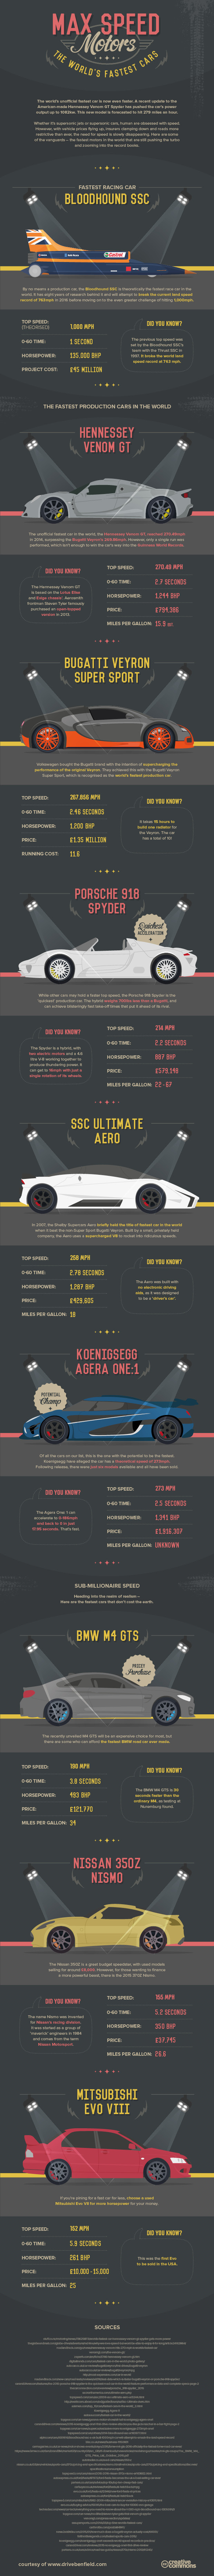 fasetest cars, ars, motoring, driving, infographic - Benfield Motors - the worlds fastest cars